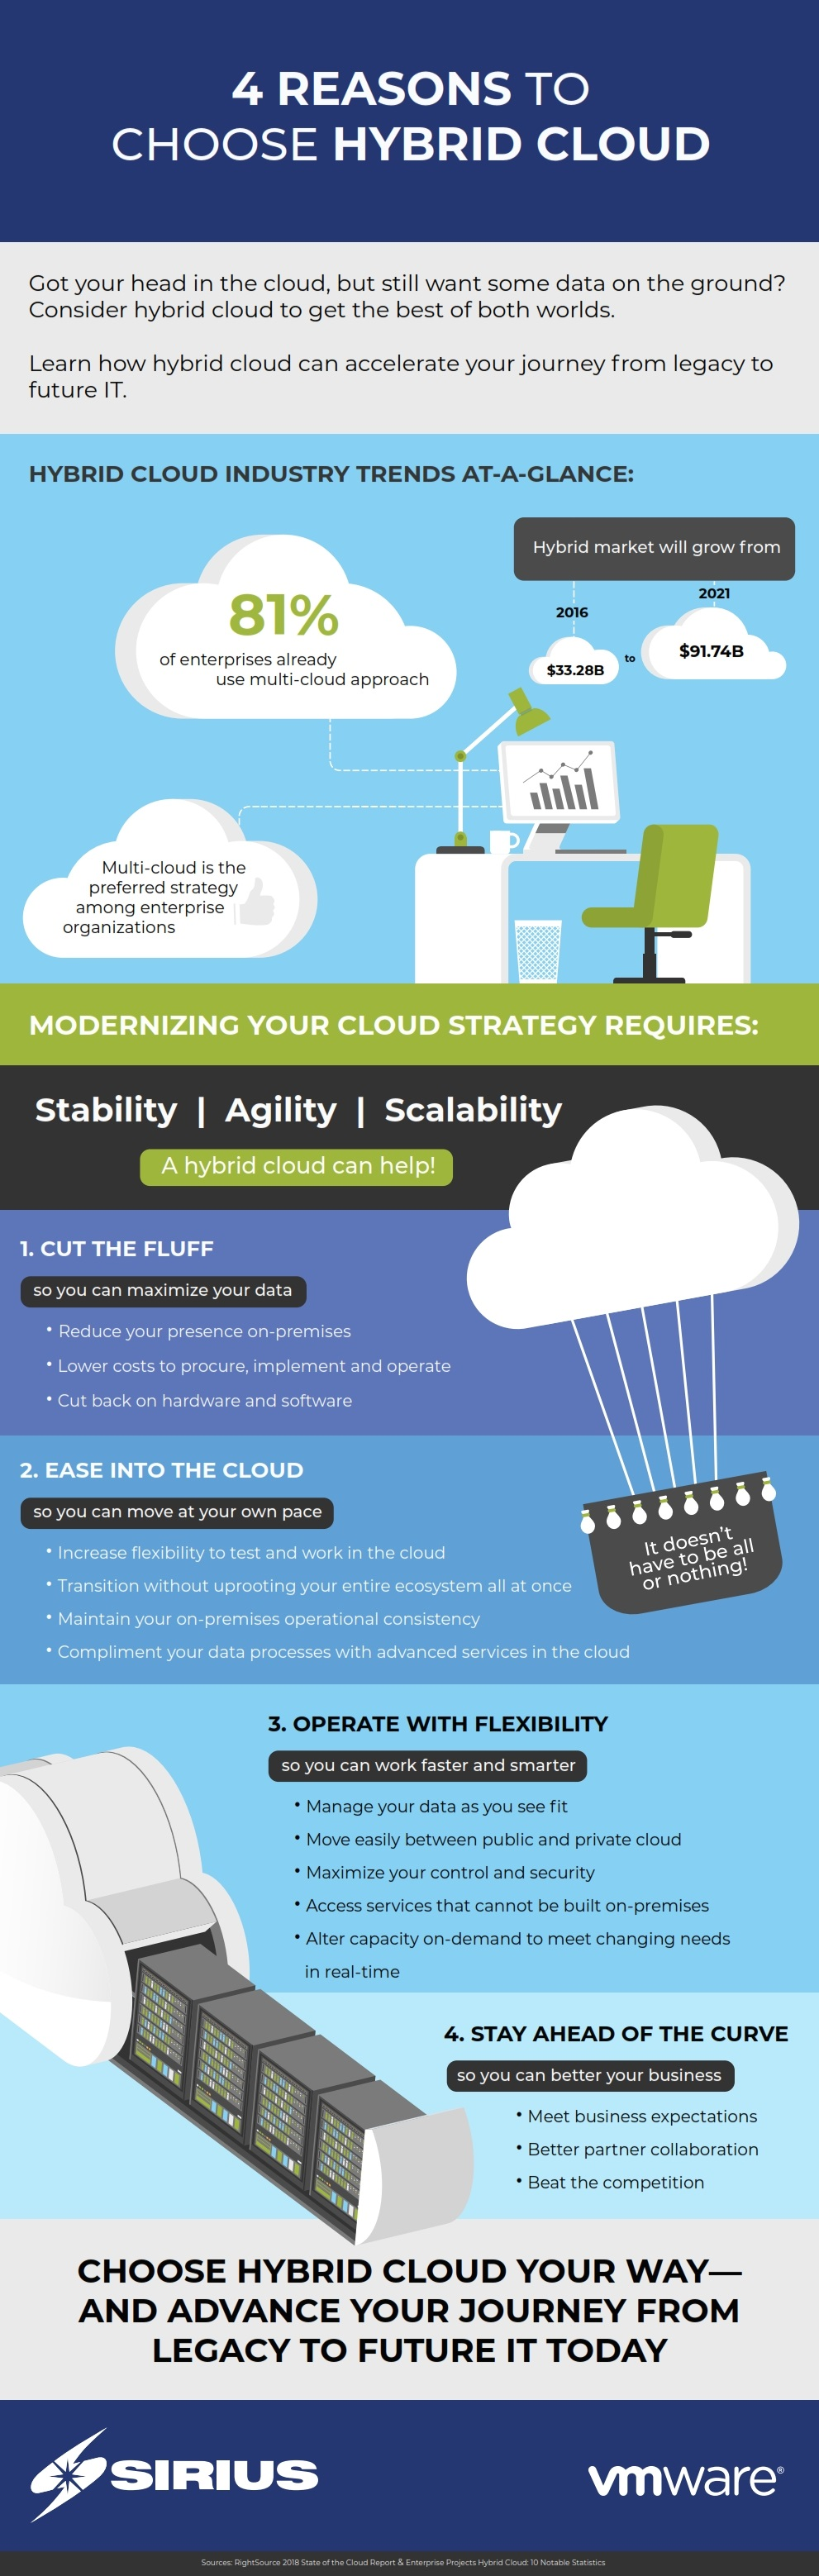 Sirius hybrid cloud infographic